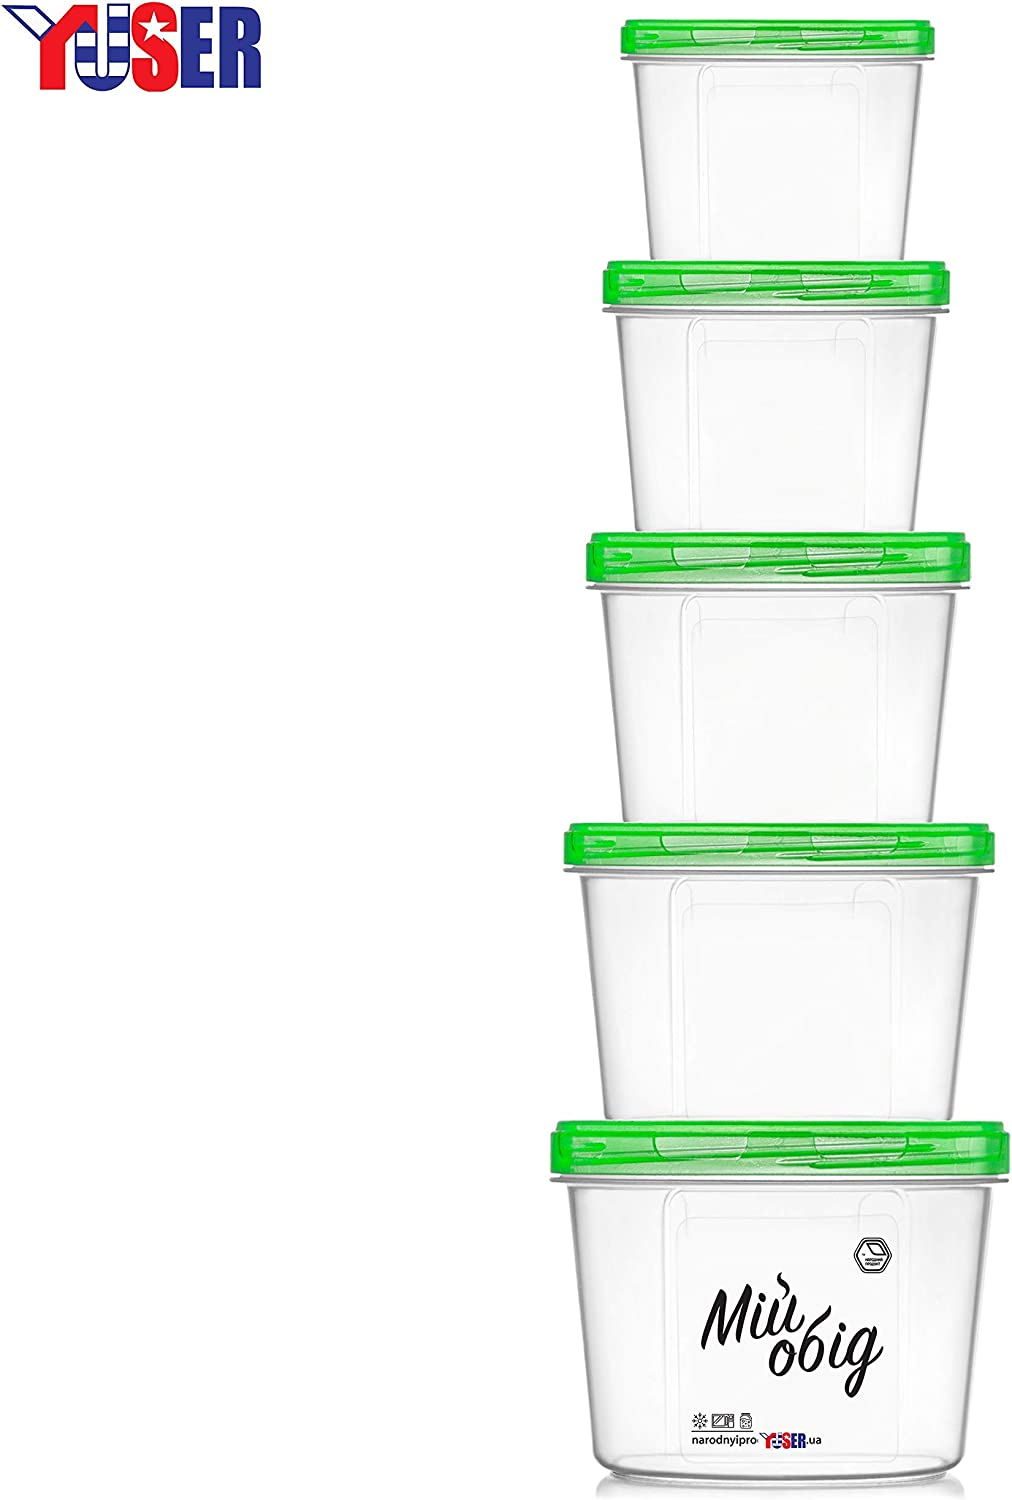 """A set of""""My lunch"""" of 5 containers:1.0 l, 0.7 l, 05 l, 0.3 l, 0.2 l-MADE IN EUROPE-Designed for storing liquid and bulk products-BPA-free-Microwave oven, Dishwasher and freezer- with green screw caps"""